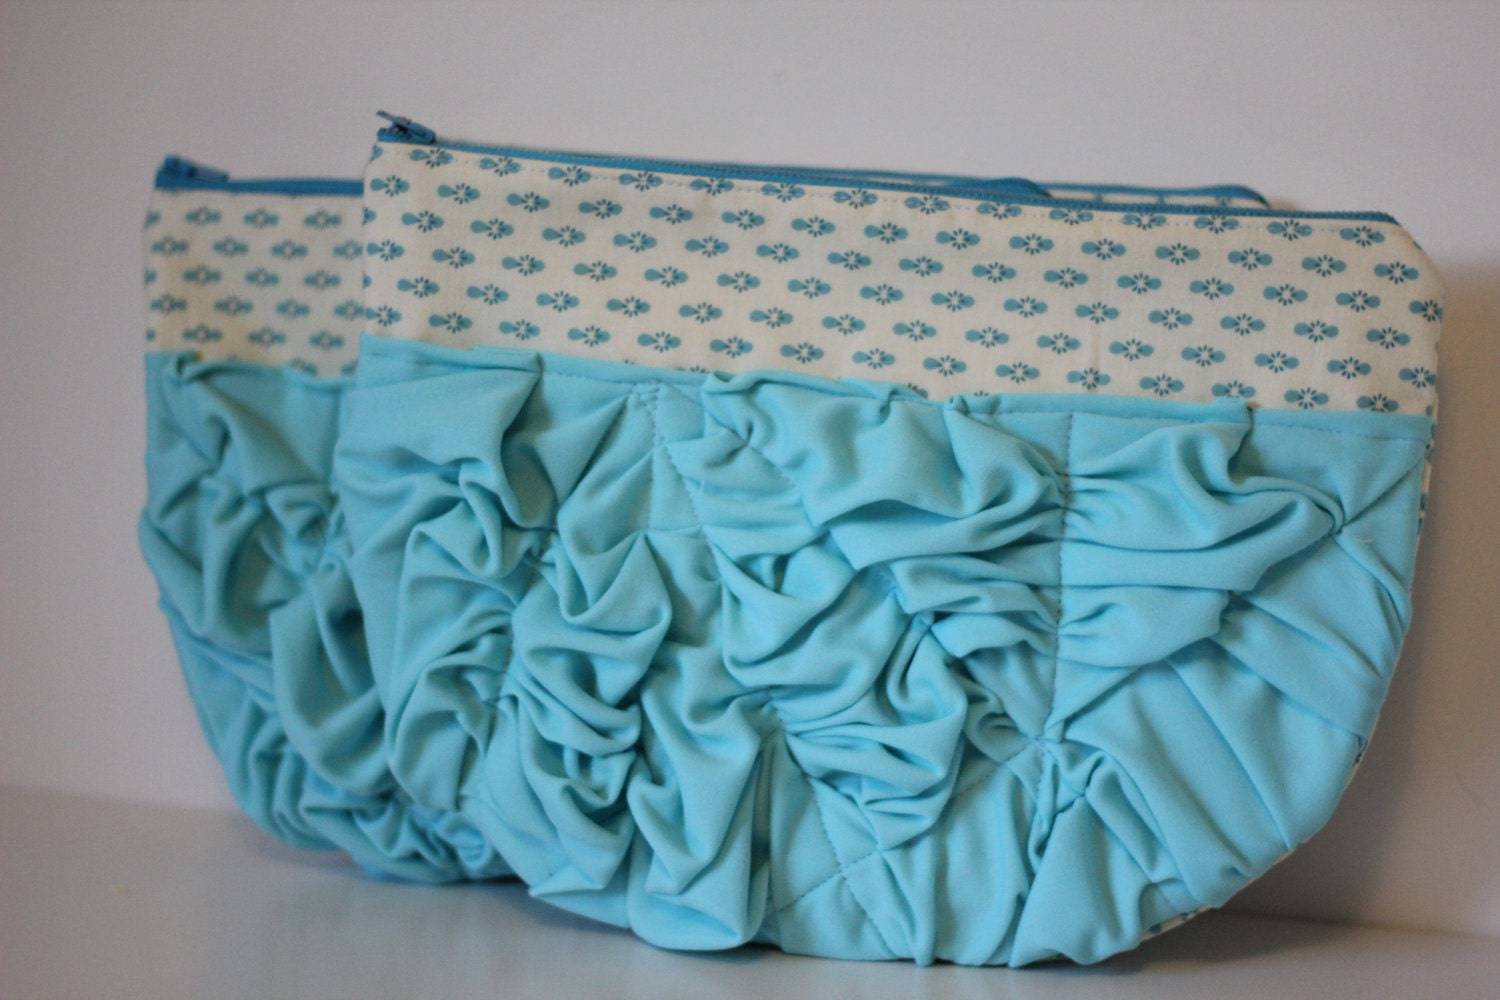 jumbo smashed ruffle clutch - turquoise and bubble gum